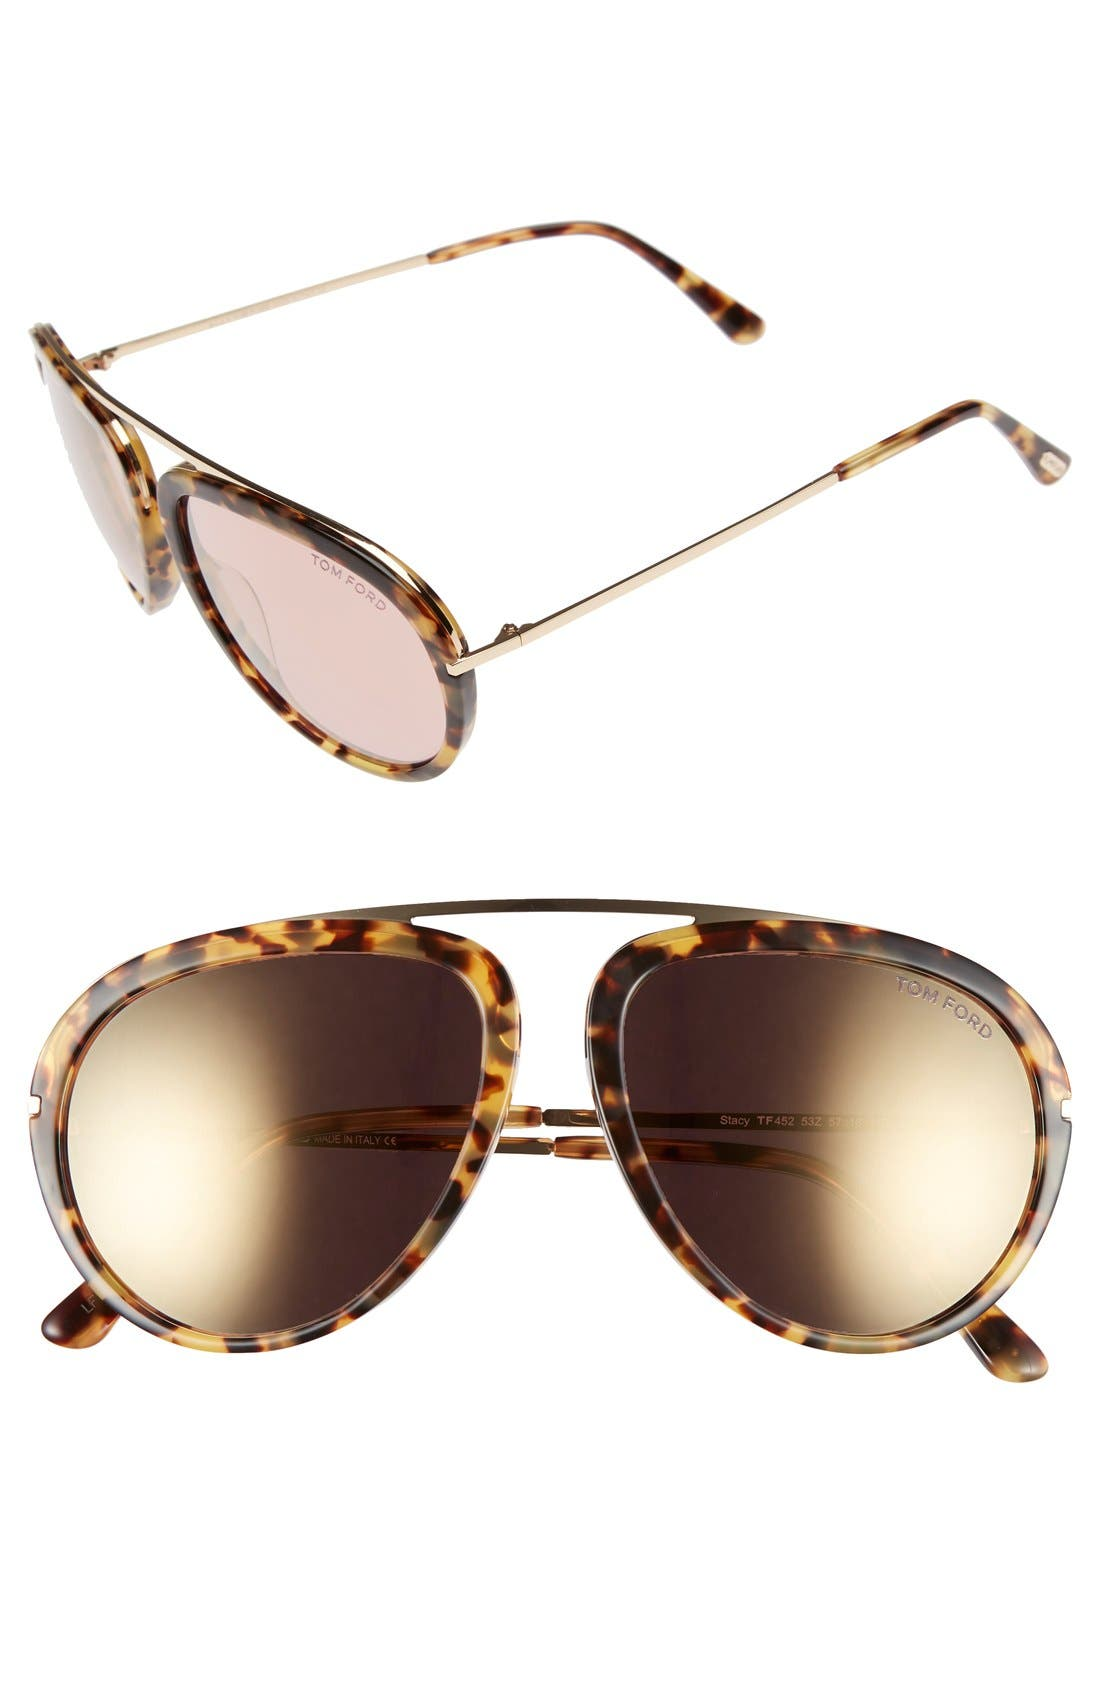 'Stacy' 57mm Aviator Sunglasses,                             Main thumbnail 1, color,                             BLONDE HAVANA/ GRADIENT